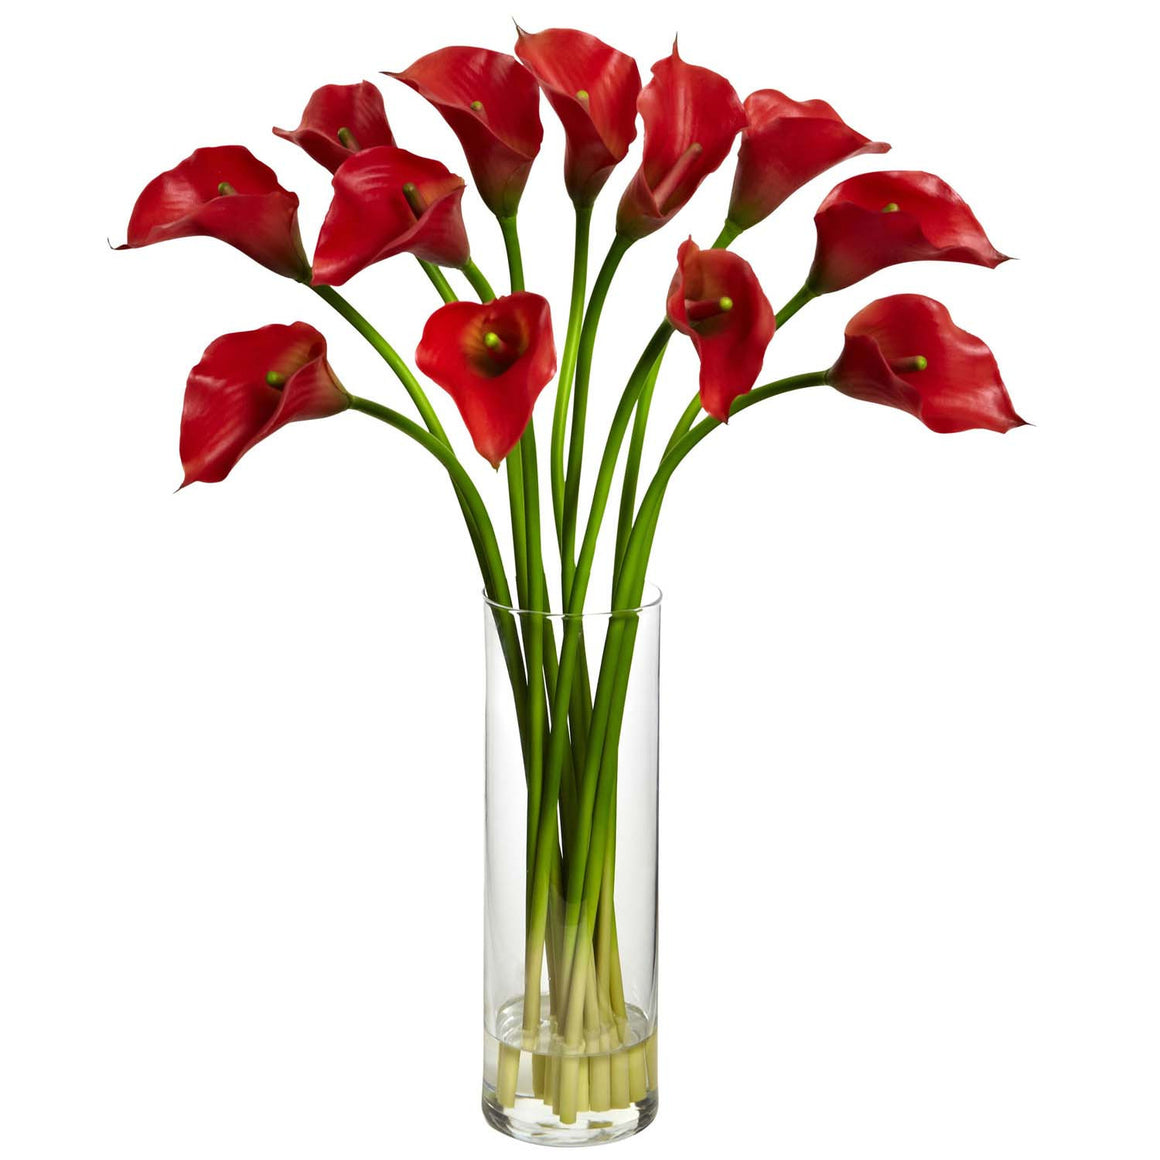 Calla Lily Flower Arrangement